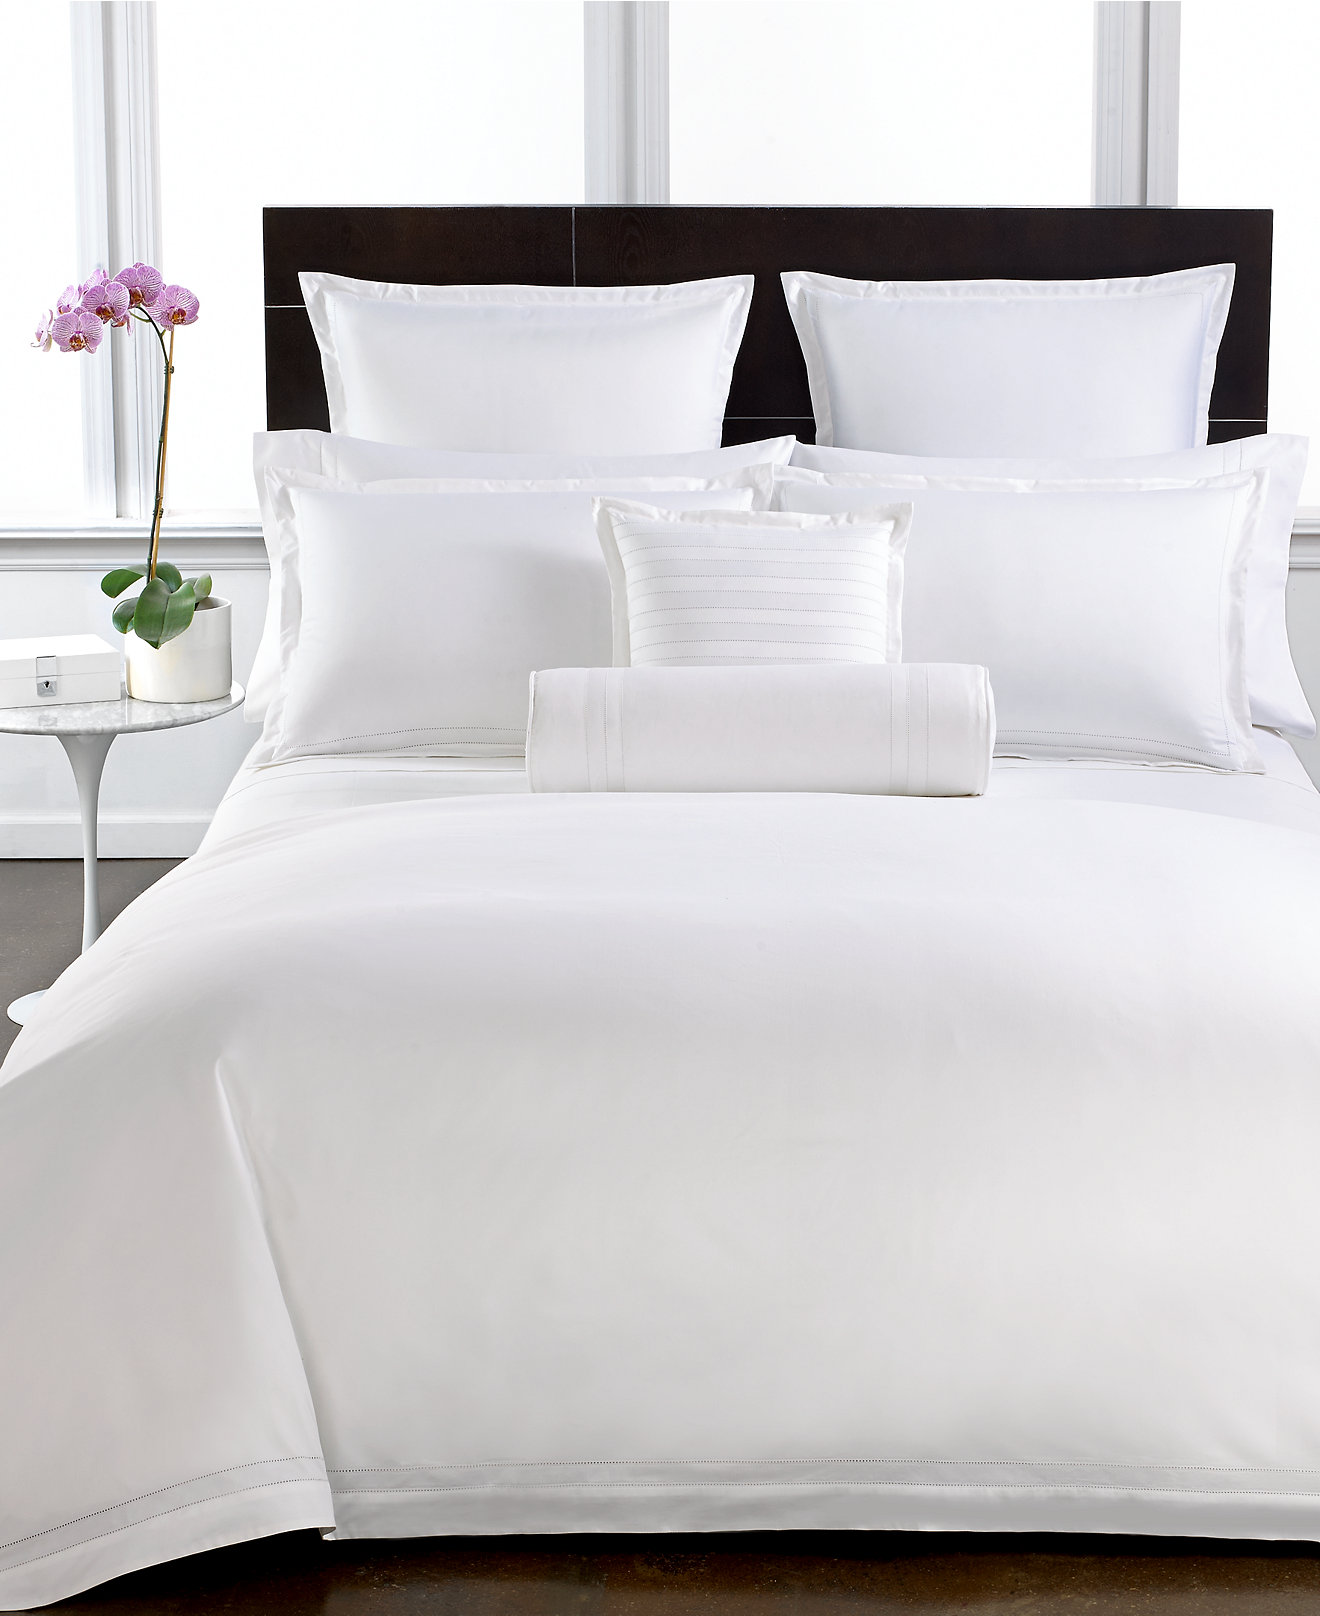 White cotton bed sheets -